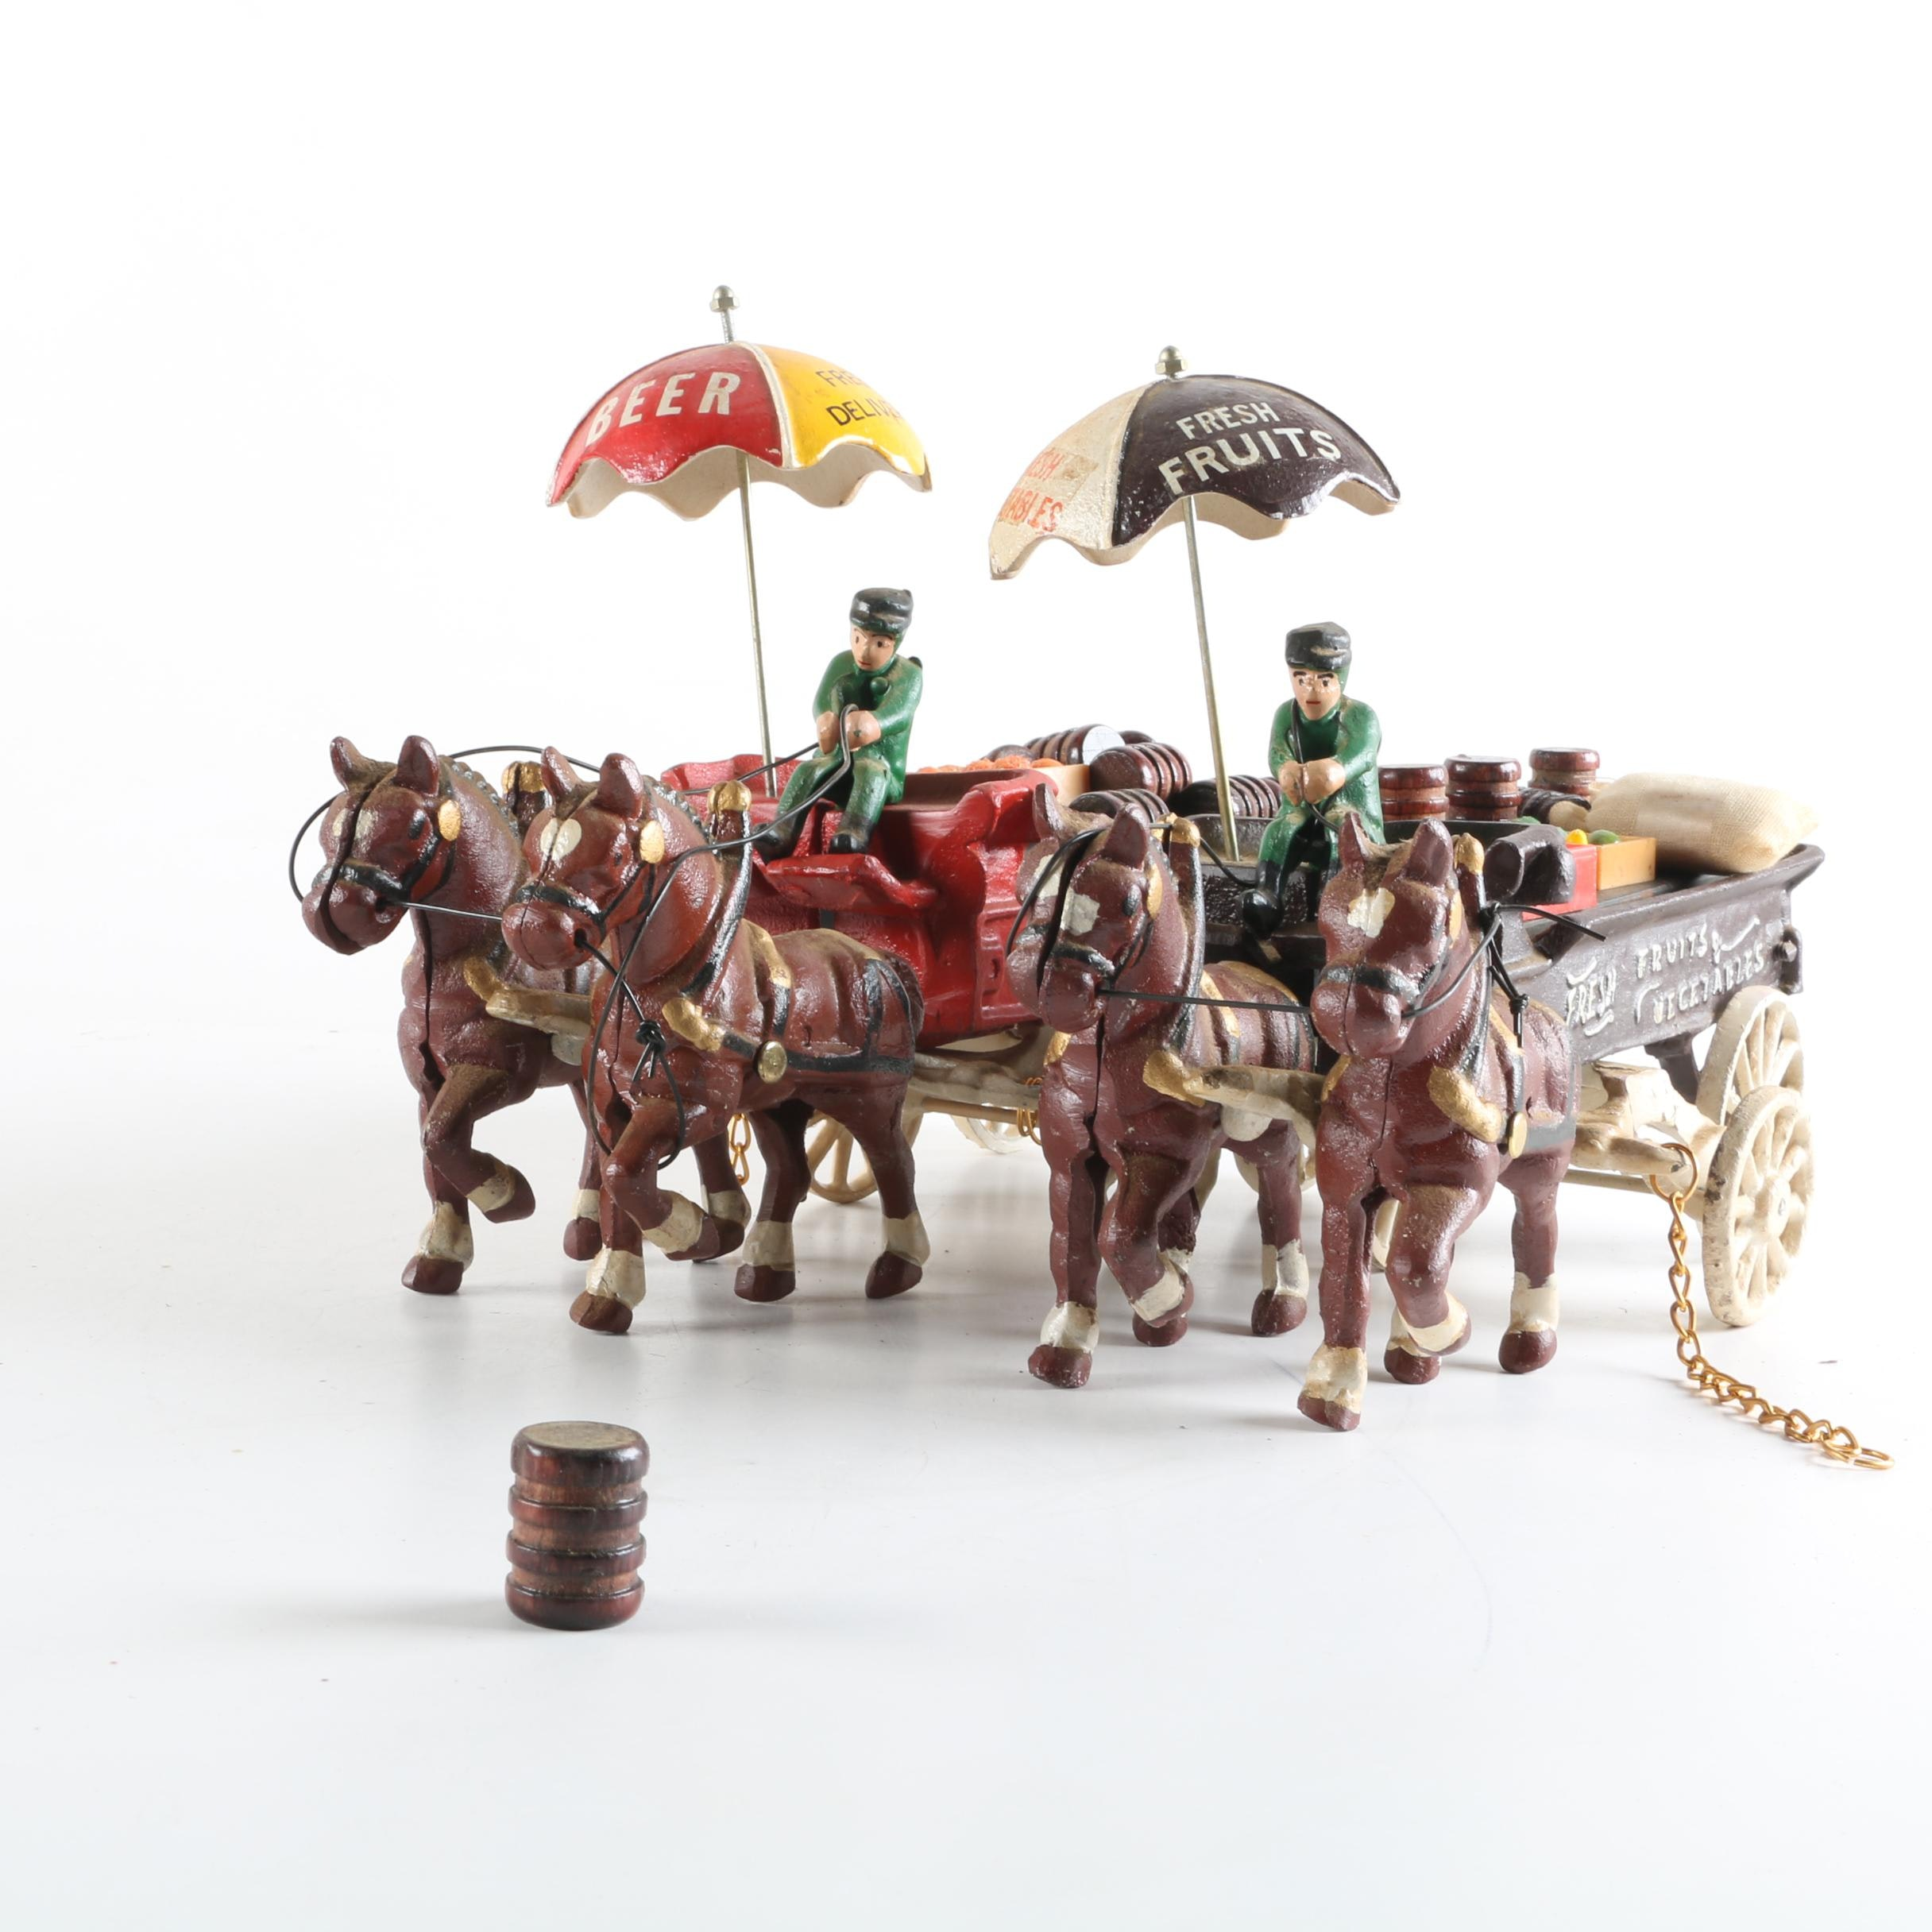 Cast Iron Horse Drawn Beer and Vegetable Carts